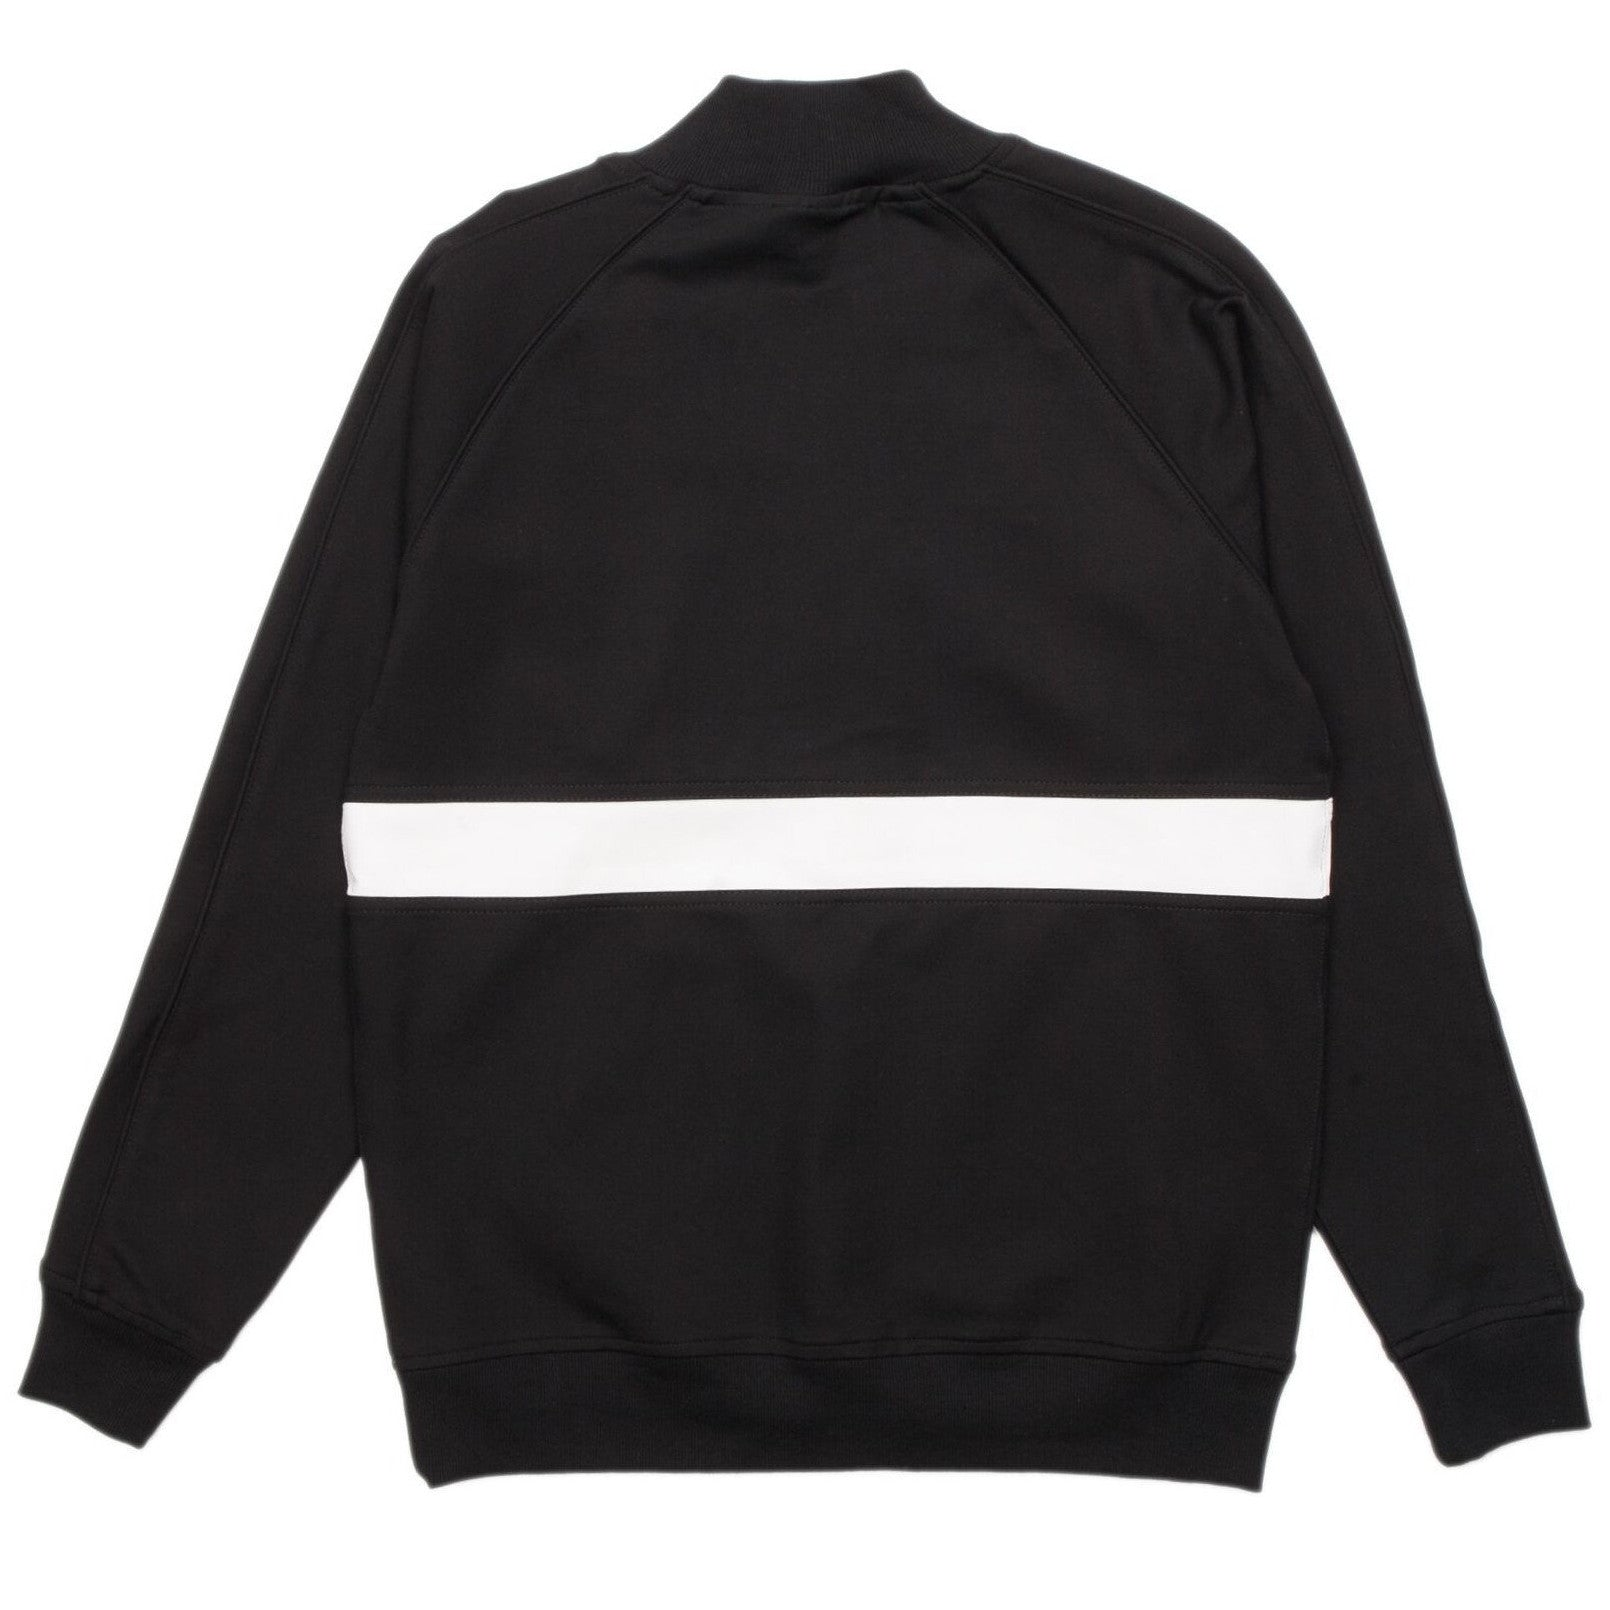 Kadam Track Jacket (Black) - Publish